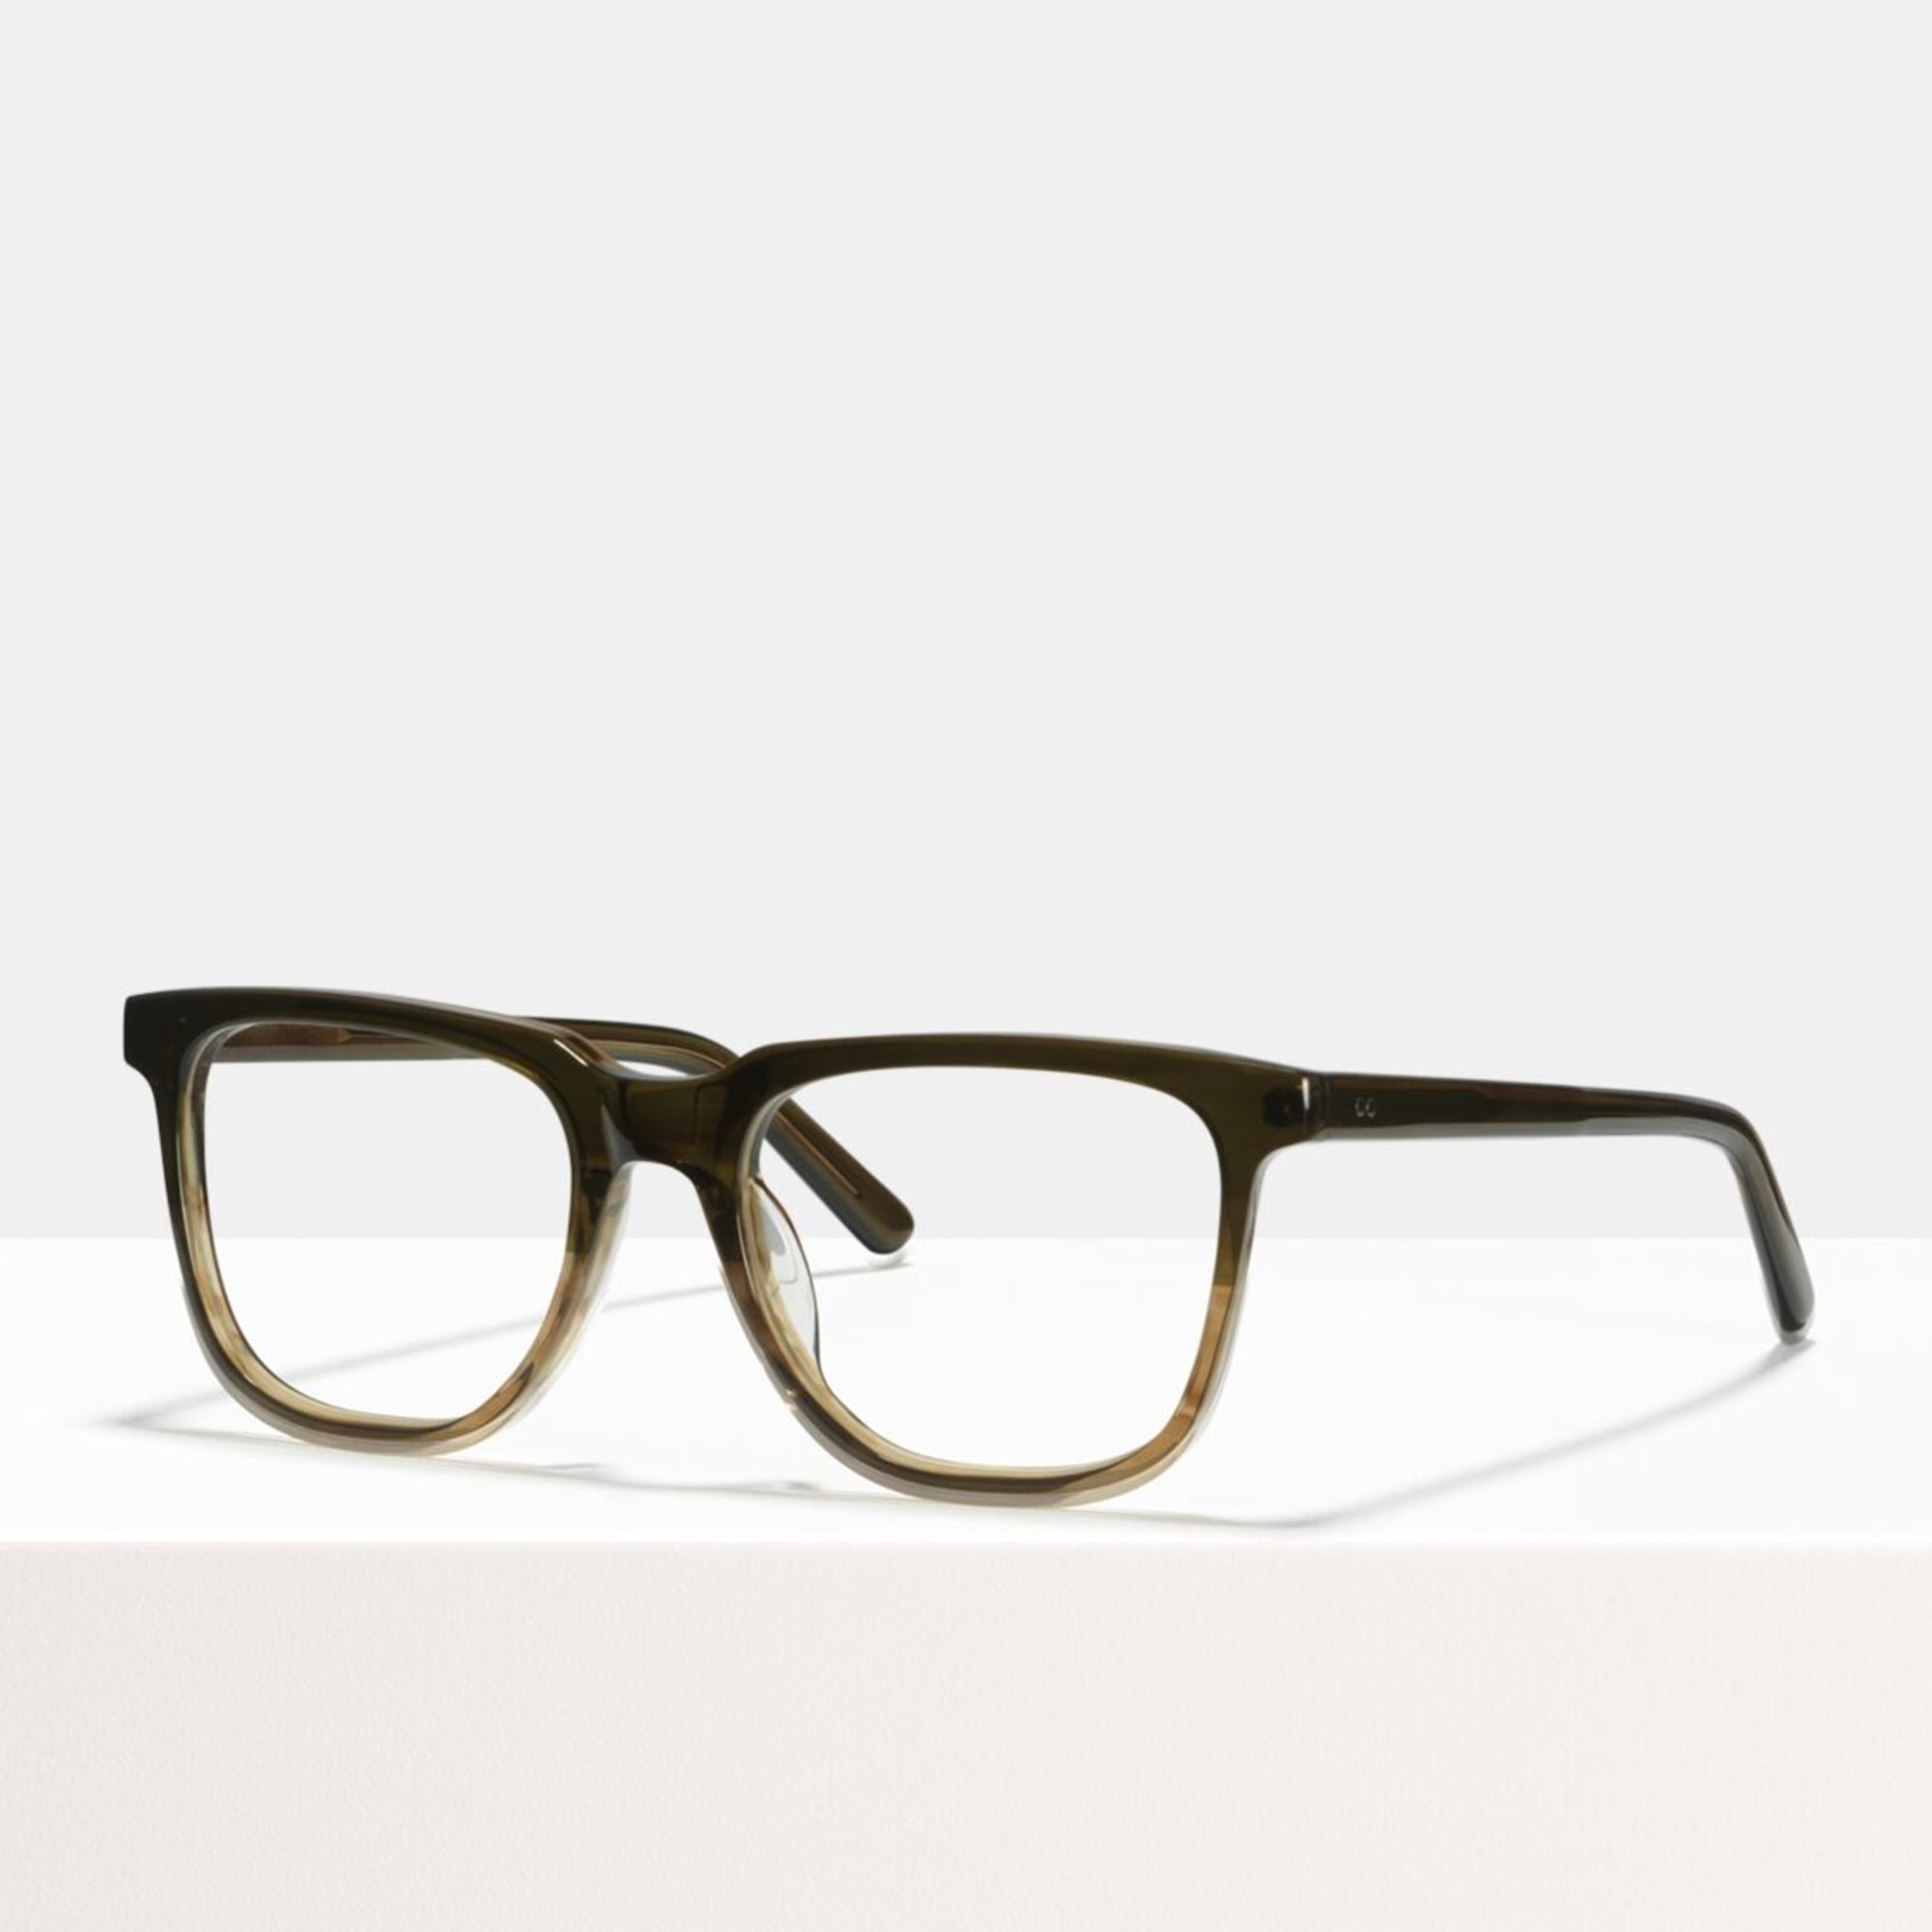 Ace & Tate Glasses | rectangle acetate in Brown, Green